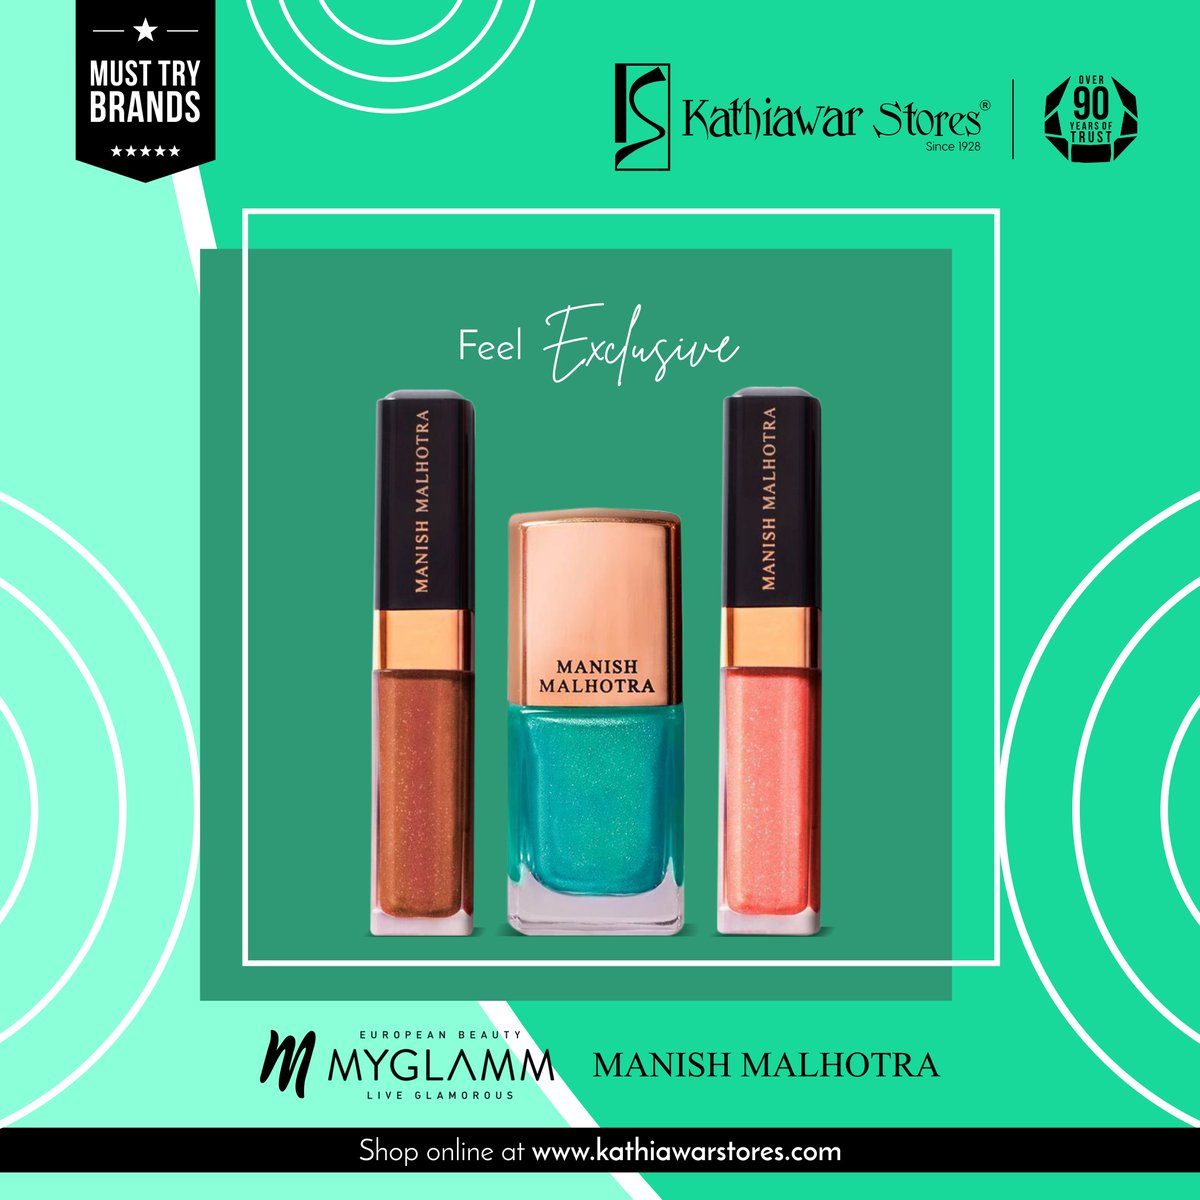 Shop for the exclusive range of products by Manish Malhotra from MyGlamm. From Skincare to Makeup, you'll find all.      #Kathiawar #KathiawarStores #LatestTrends #Fashion #Beauty #Branded #BeautyCare #BeautyTips #BeautySecrets #Cosmetics #beauty #shopping